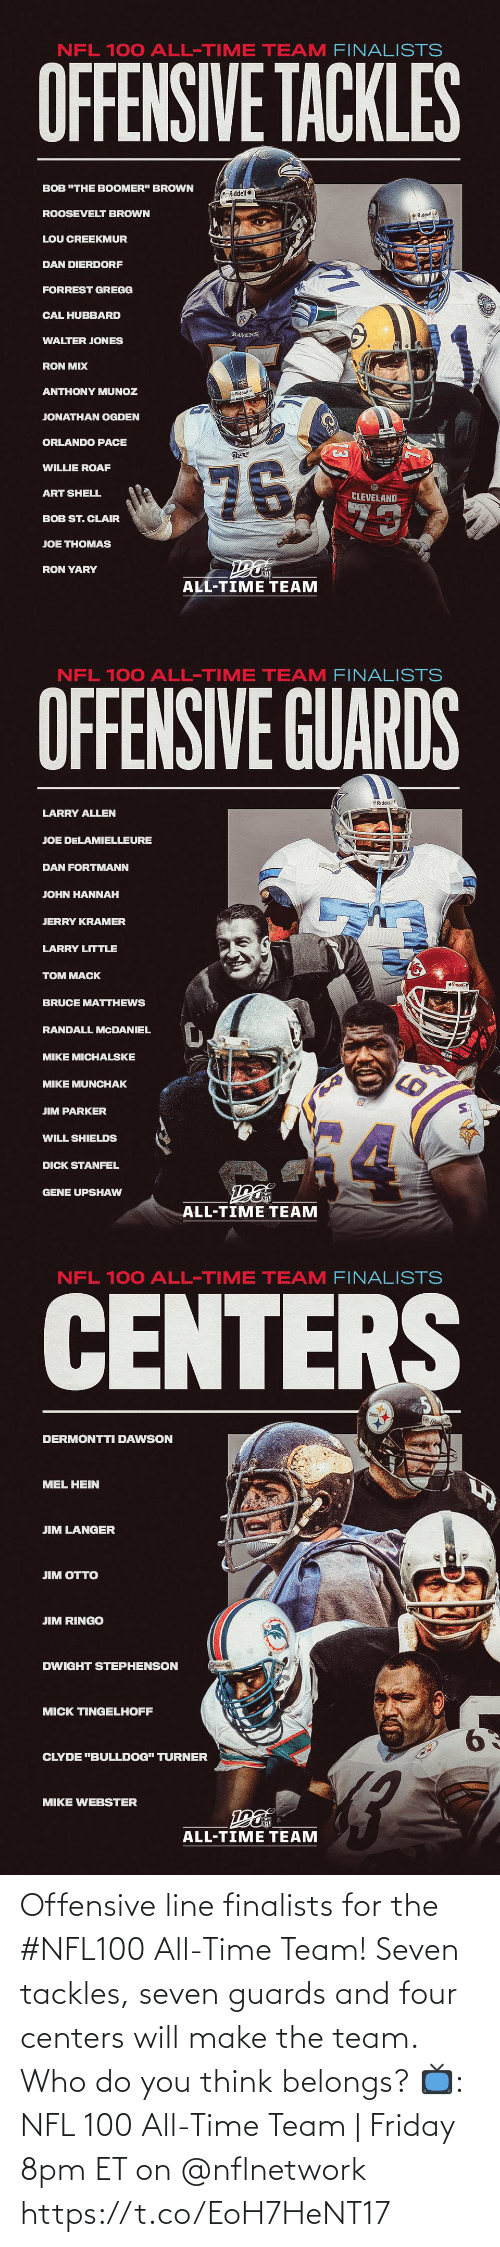 "willie: NFL 100 ALL-TIME TEAM FINALISTS  OFFENSIVE TACKLES  BOB ""THE BOOMER"" BROWN  Riddel  ROOSEVELT BROWN  O Riddell  LOU CREEKMUR  DAN DIERDORF  FORREST GREGG  CAL HUBBARD  RAVENS  WALTER JONES  RON MIX  ANTHONY MUNOZ  Riddell  JONATHAN OGDEN  ORLANDO PACE  Rams  76  WILLIE ROAF  ART SHELL  CLEVELAND  73  BOB ST. CLAIR  JOE THOMAS  RON YARY  ALL-TIME TEAM   NFL 100 ALL-TIME TEAM FINALISTS  OFFENSIVE GUARDS  Riddel  LARRY ALLEN  JOE DELAMIELLEURE  DAN FORTMANN  JOHN HANNAH  JERRY KRAMER  LARRY LITTLE  TOM MACK  BRUCE MATTHEWS  RANDALL MCDANIEL  MIKE MICHALSKE  MIKE MUNCHAK  JIM PARKER  WILL SHIELDS  DICK STANFEL  GENE UPSHAW  ALL-TIME TEAM   NFL 100 ALL-TIME TEAM FINALISTS  CENTERS  DERMONTTI DAWSON  MEL HEIN  JIM LANGER  ЛM OТTO  JIM RINGO  DWIGHT STEPHENSON  MICK TINGELHOFF  9.  CLYDE ""BULLDOG"" TURNER  MIKE WEBSTER  ALL-TIME TEAM Offensive line finalists for the #NFL100 All-Time Team!  Seven tackles, seven guards and four centers will make the team. Who do you think belongs?  📺: NFL 100 All-Time Team 